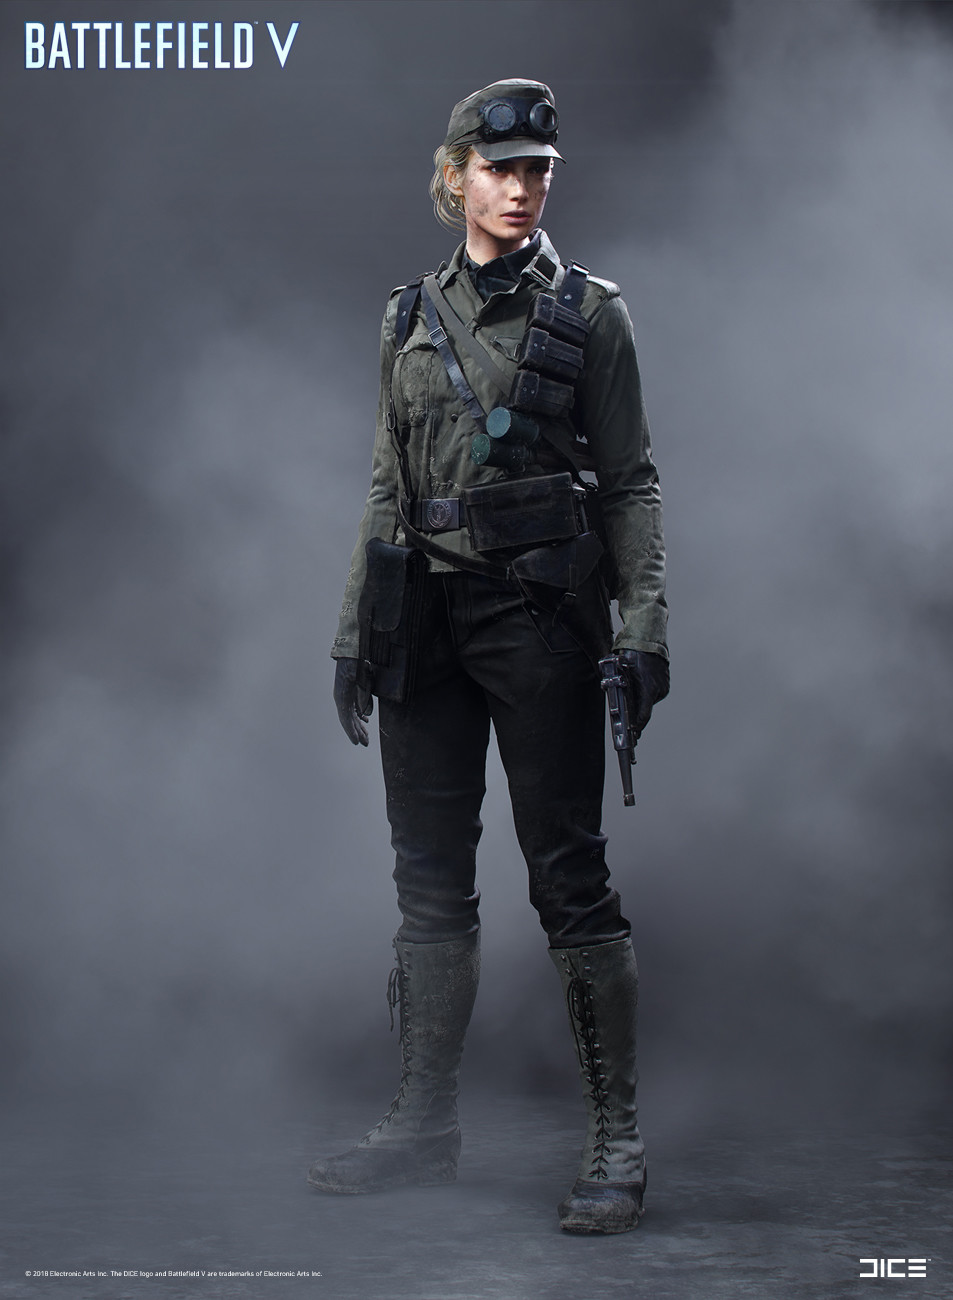 """Battlefield V"" - Axis Medic, MP Soldier - Concept Art"